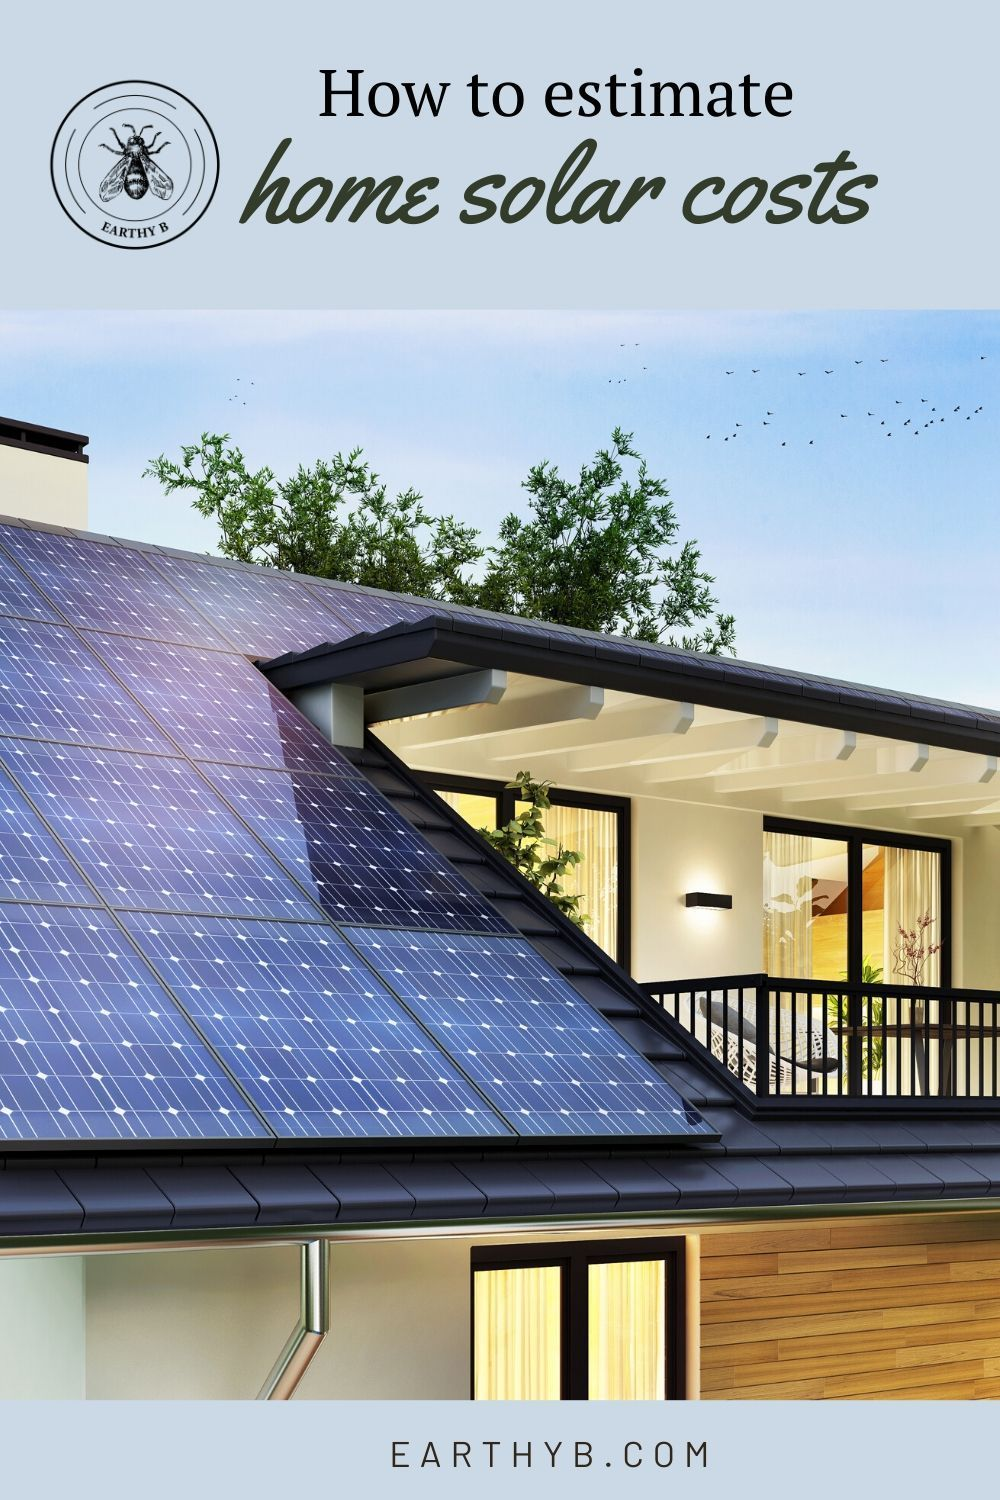 How To Estimate Home Solar Panel Costs In 2020 In 2020 Solar Cost Solar Panel Cost Solar Panels